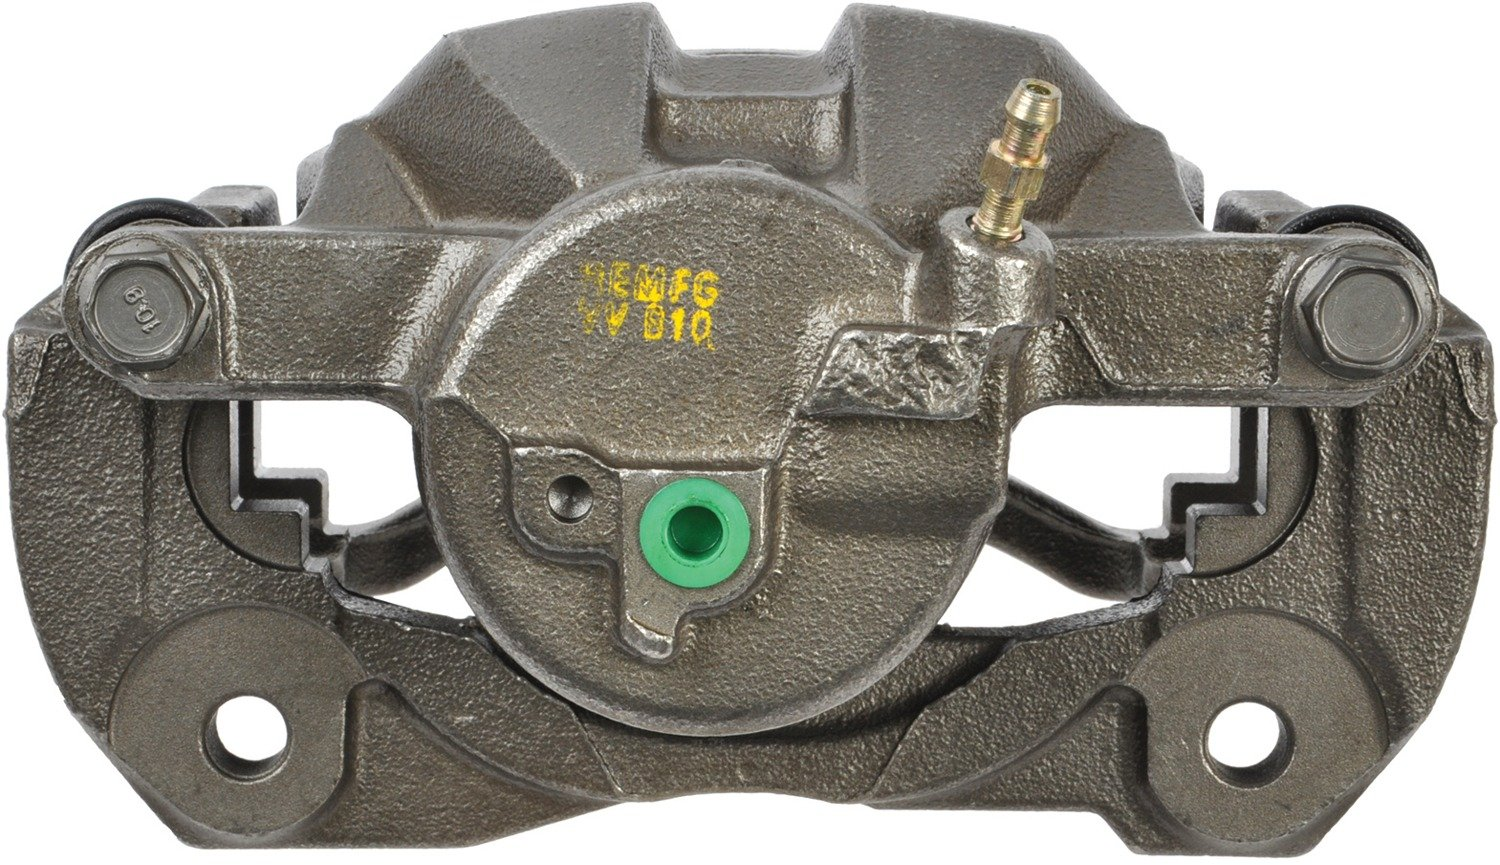 Cardone 19-B3197A Remanufactured Import Friction Ready (Unloaded) Brake Caliper A1 Cardone